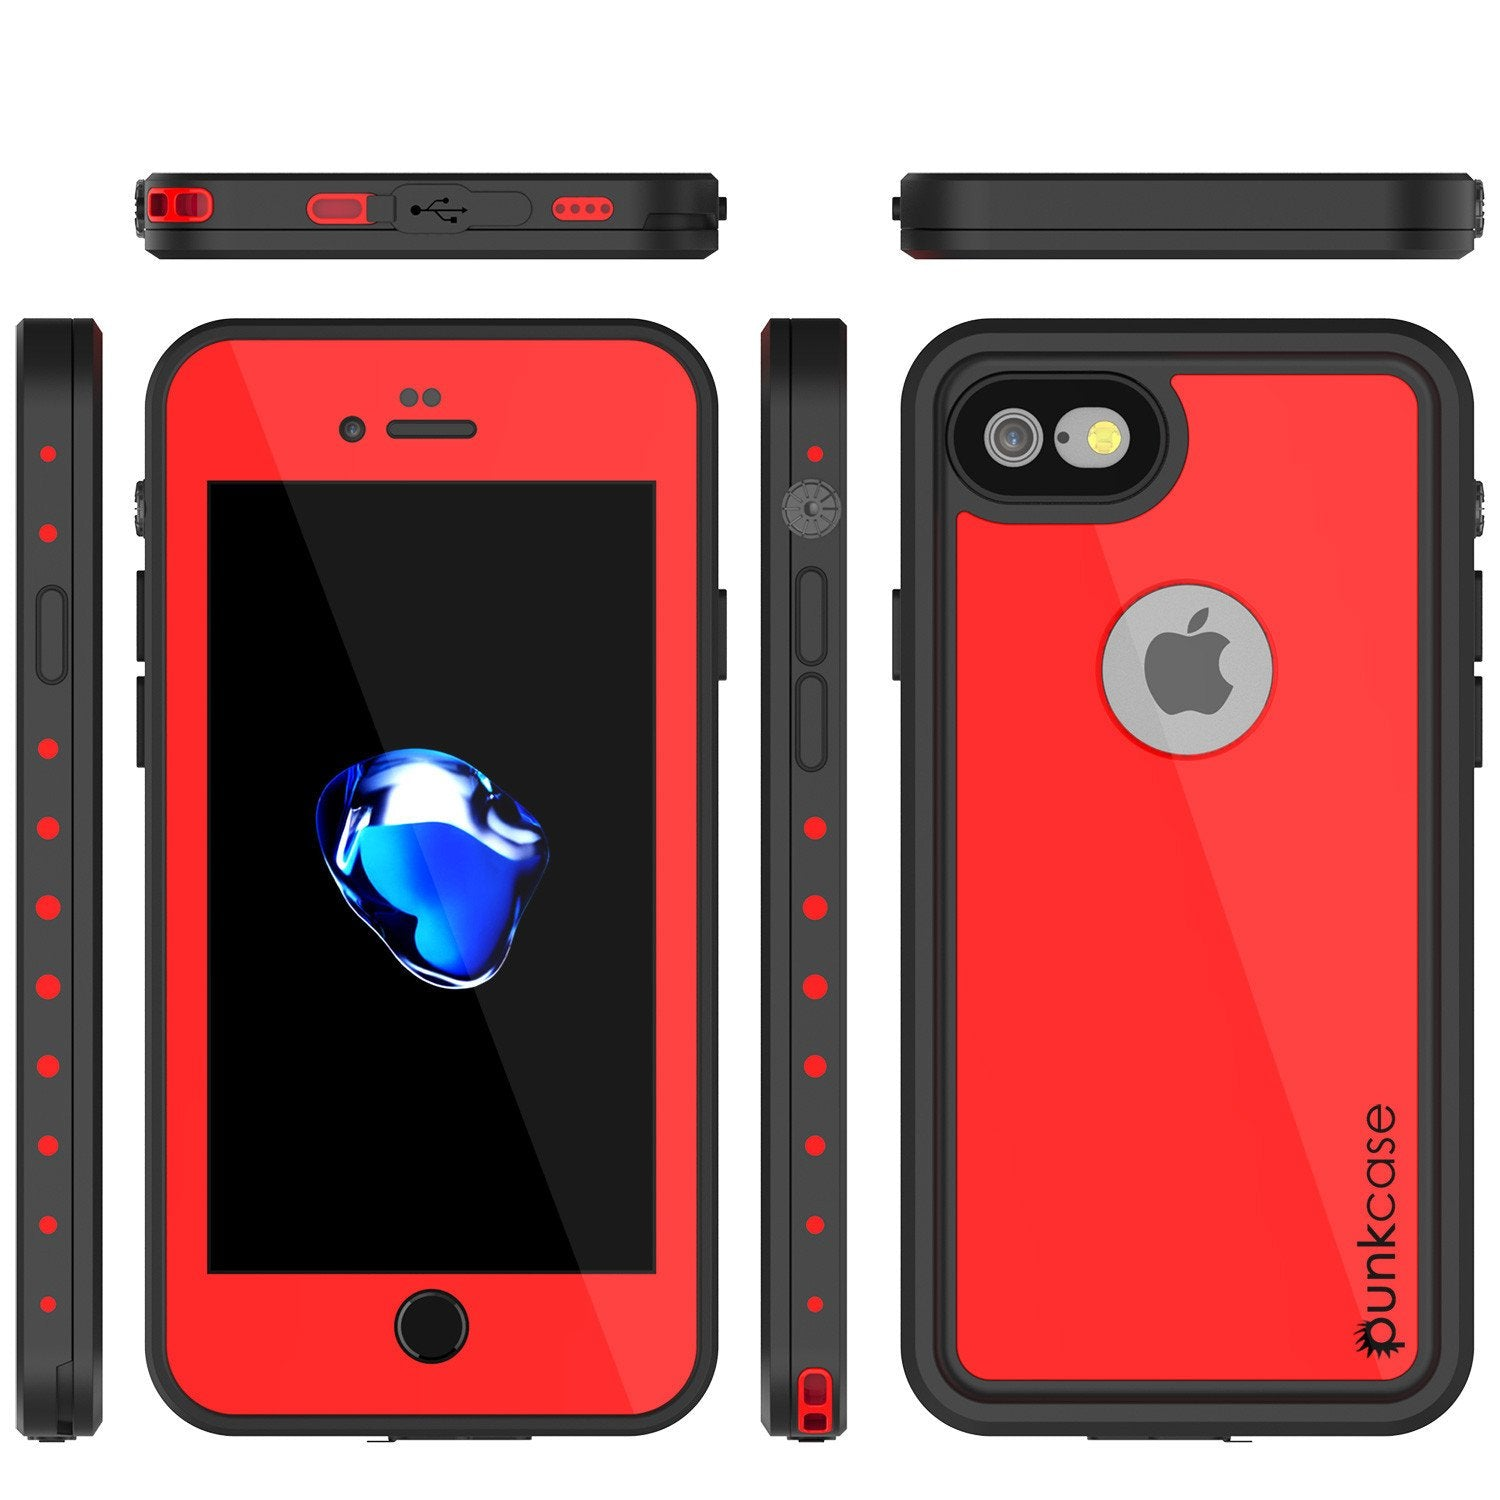 iPhone 7 Waterproof Case, Punkcase [Red] [StudStar Series] [Slim Fit] [IP68 Certified] [Shockproof] [Dirtproof] [Snowproof] Armor Cover for Apple iPhone 7 & 7s